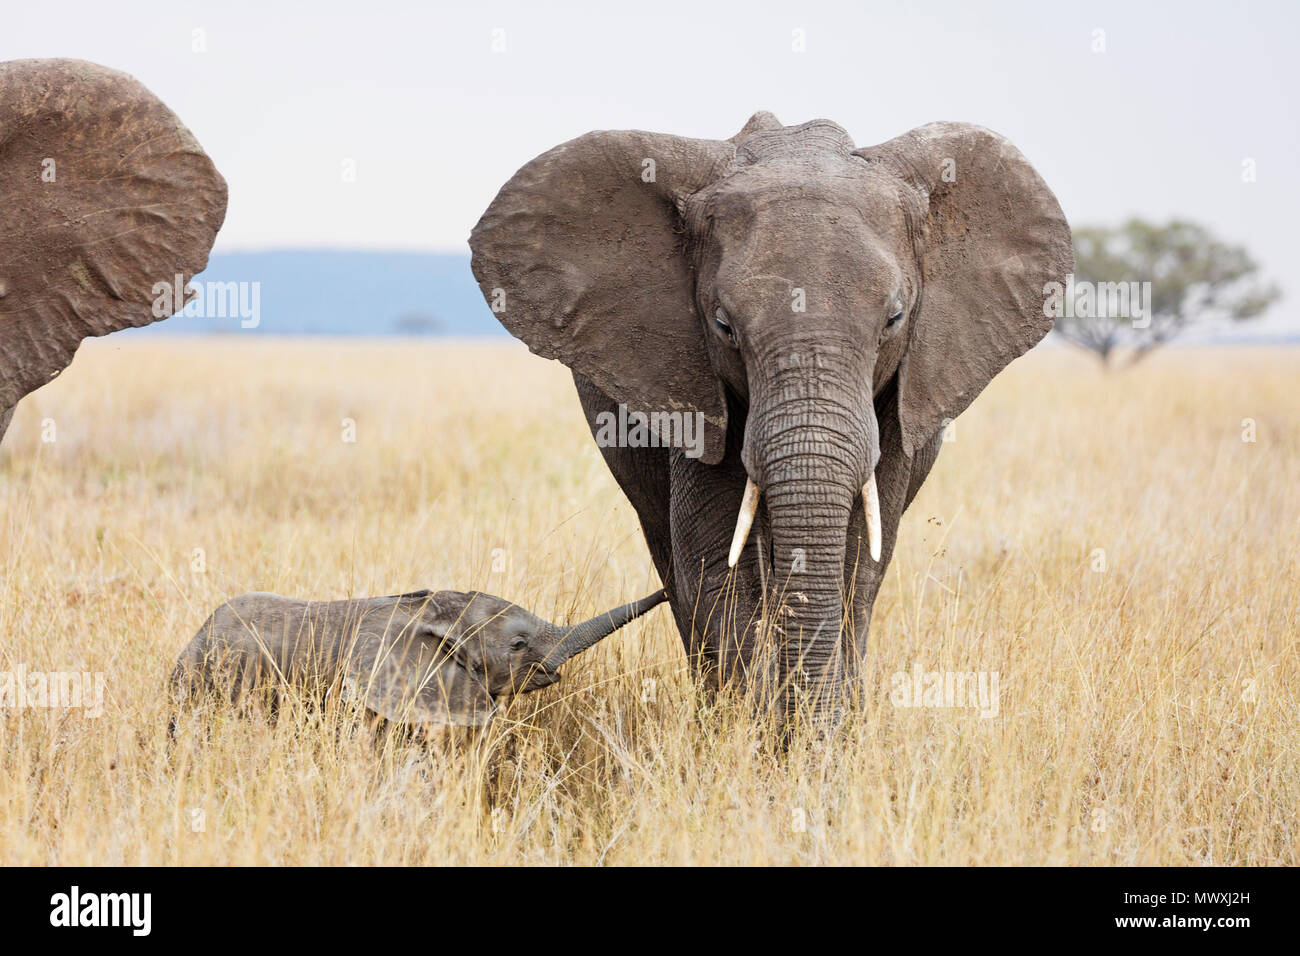 Baby African elephant and mother (Loxodonta africana), Serengeti National Park, UNESCO World Heritage Site, Tanzania, East Africa, Africa Stock Photo